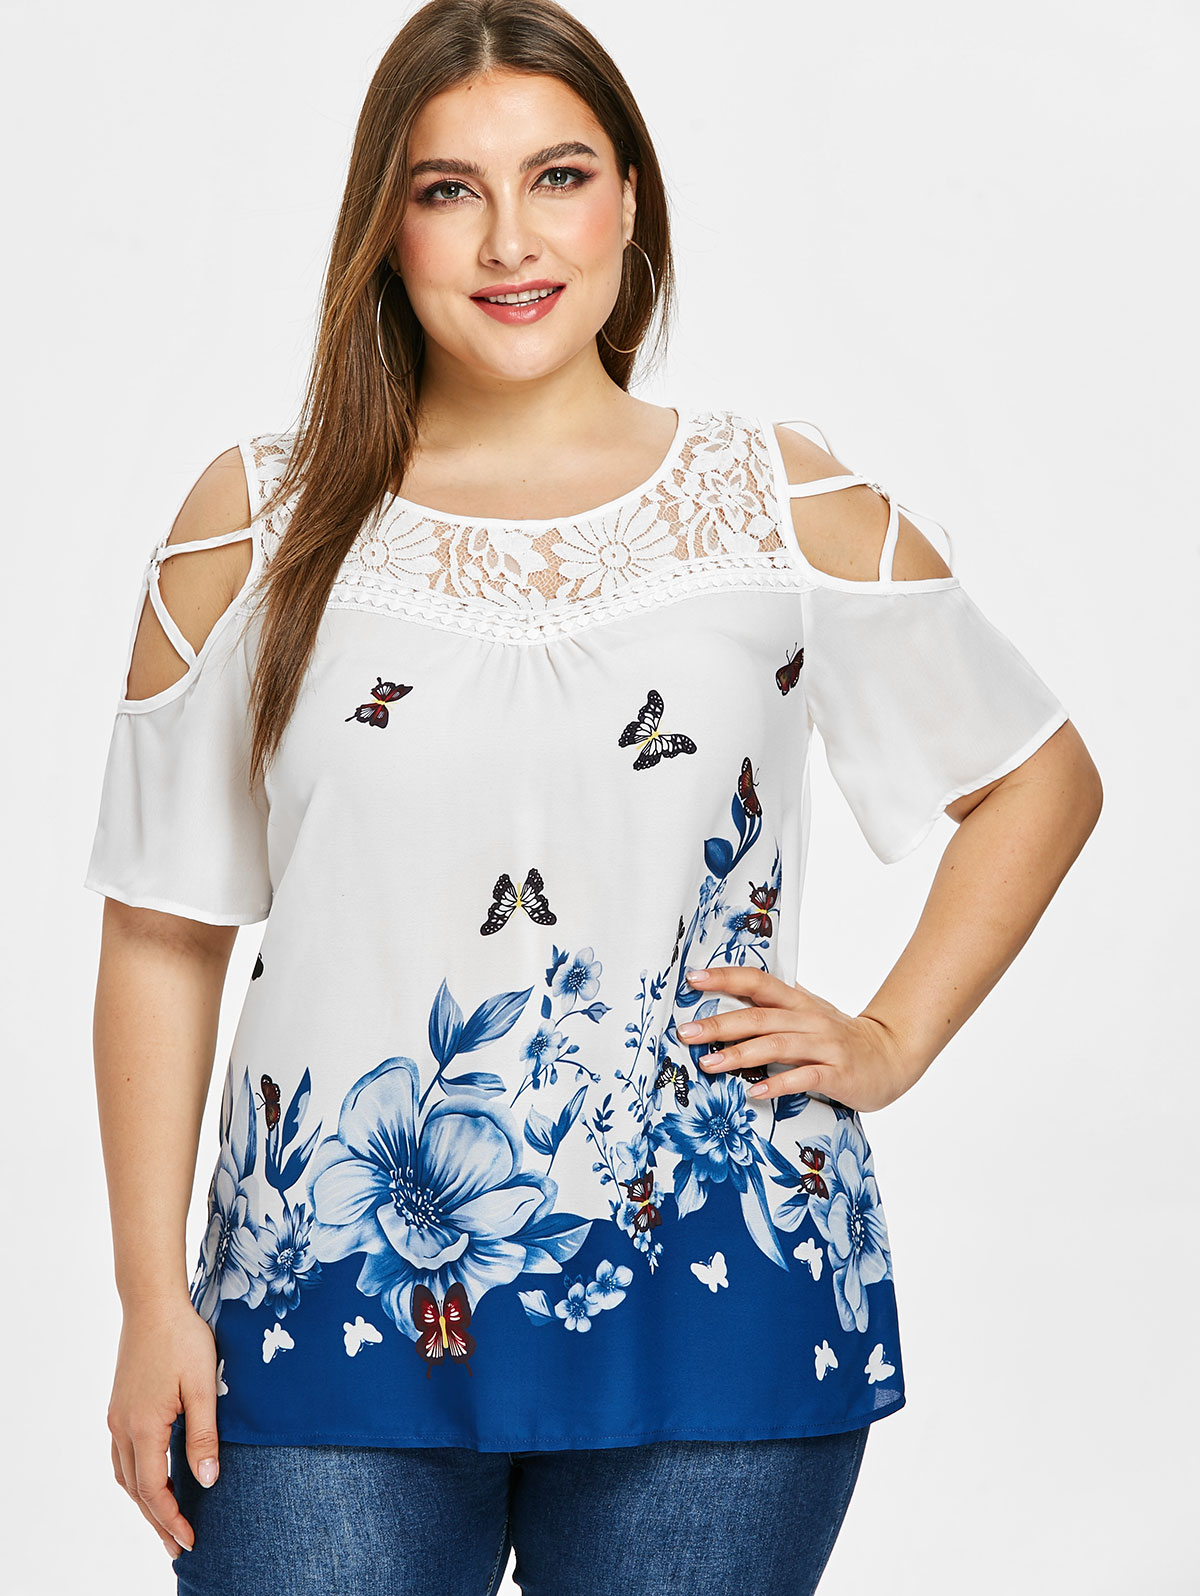 fb1bbaf18d86bb Details about Plus Size Butterfly Floral Printed Lace Insert Women Blouse  Cold Shoulder Tops